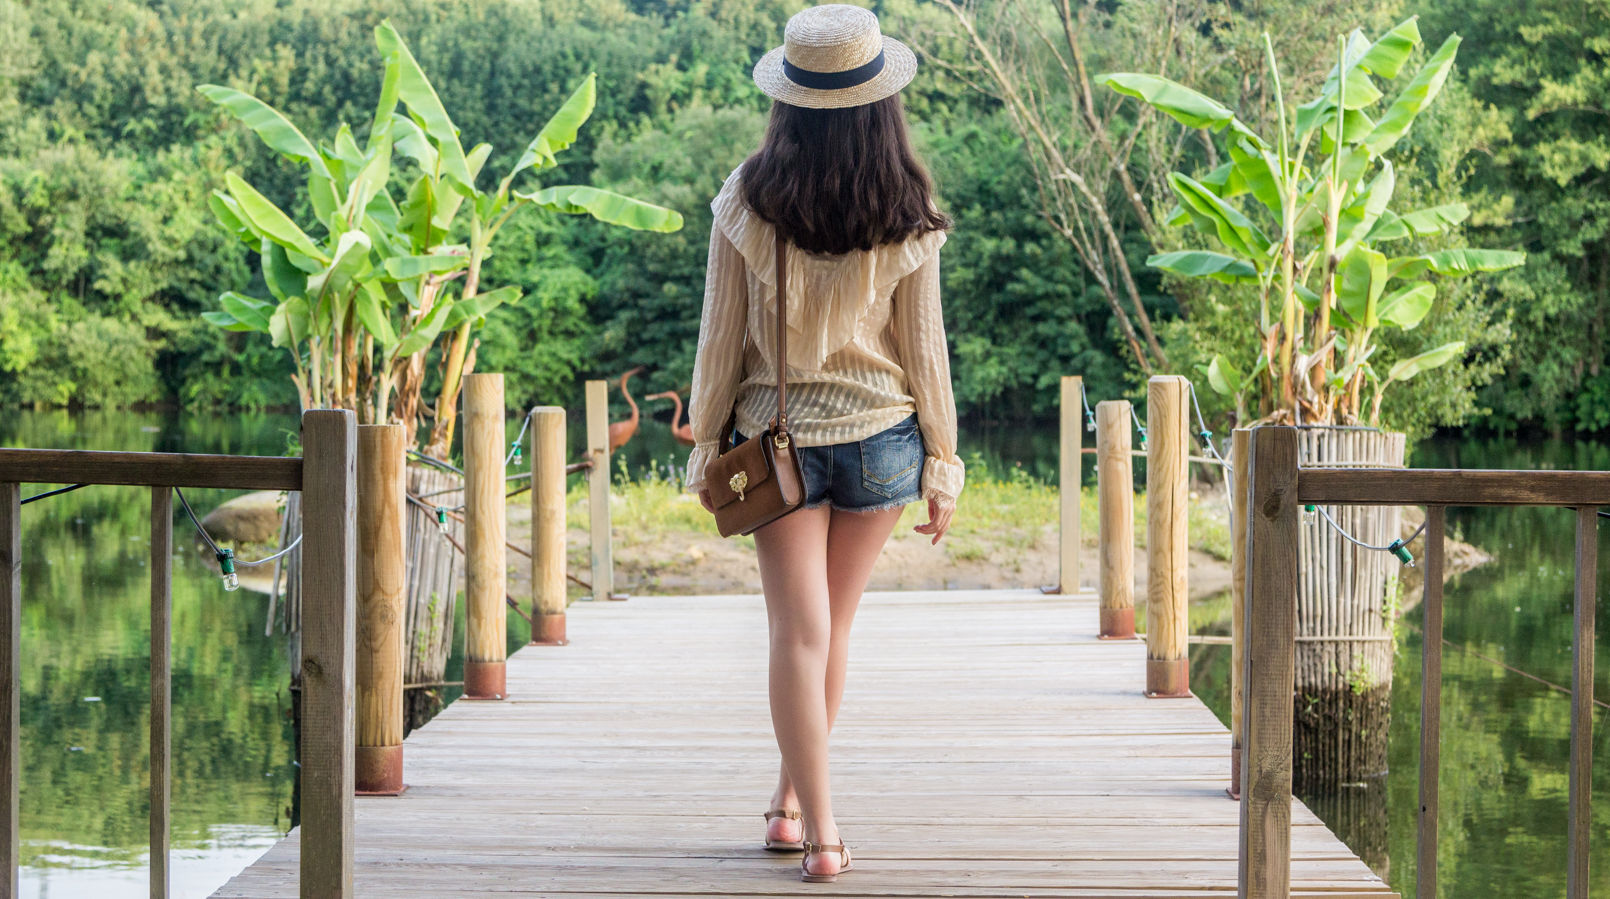 Le Fashionaire Have you ever been to Bali? straw summer hat silk nude ribbons ruffles uterque shirt denim sparkling bershka shorts brown gold elephant leather parfois bag 4201F EN